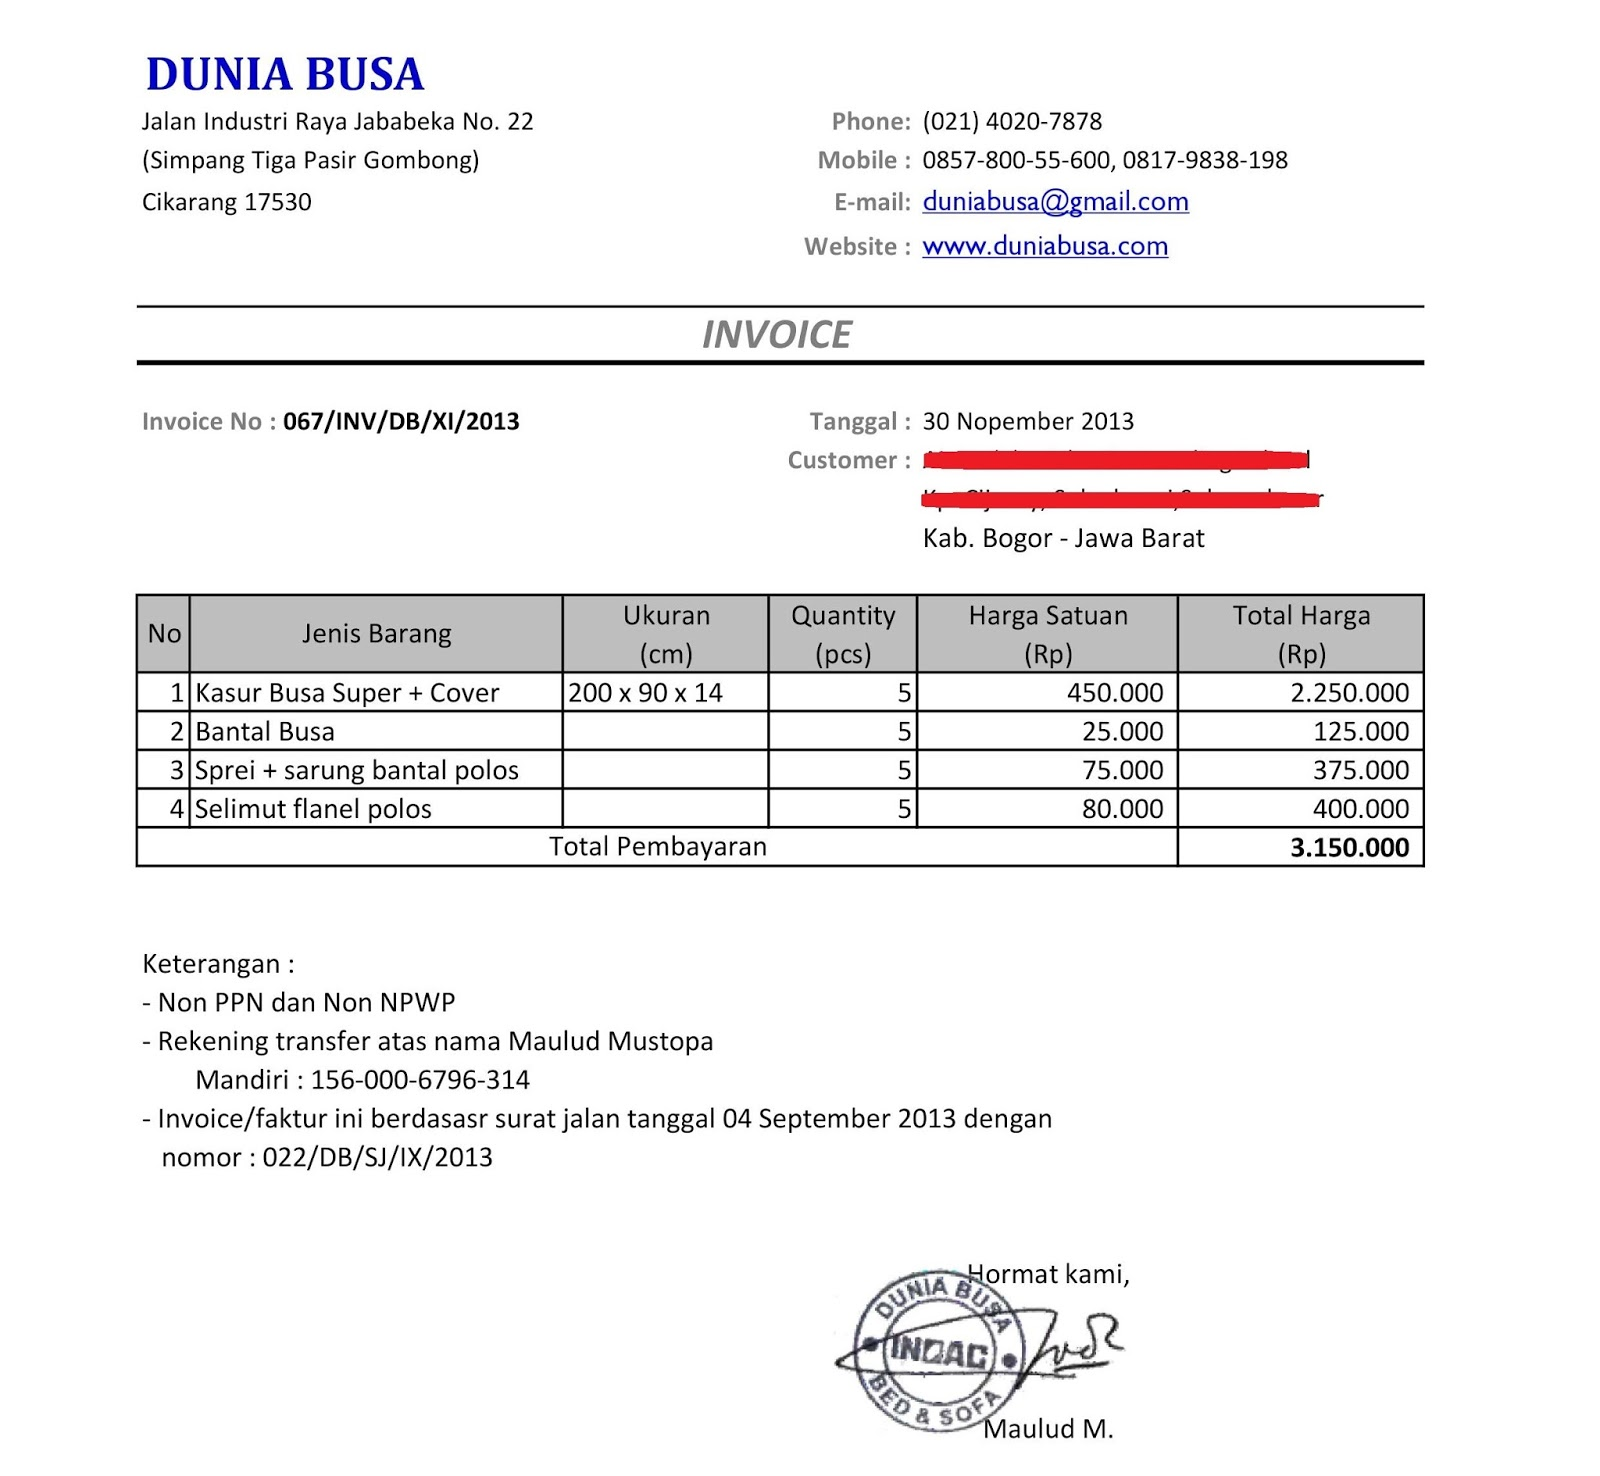 Usdgus  Pleasing Free Invoice Online  Create Invoice Online  Invoice Template  With Exciting Contoh Format Invoice Atau Surat Tagihan  Brankas Arsip  Free Invoice Online With Divine Delta Airlines Baggage Receipt Also Post Office Return Receipt In Addition H Receipt Status And Sub Hand Receipt As Well As Certified Mail With Return Receipt Cost Additionally  Part Receipt Books From Sklepco With Usdgus  Exciting Free Invoice Online  Create Invoice Online  Invoice Template  With Divine Contoh Format Invoice Atau Surat Tagihan  Brankas Arsip  Free Invoice Online And Pleasing Delta Airlines Baggage Receipt Also Post Office Return Receipt In Addition H Receipt Status From Sklepco